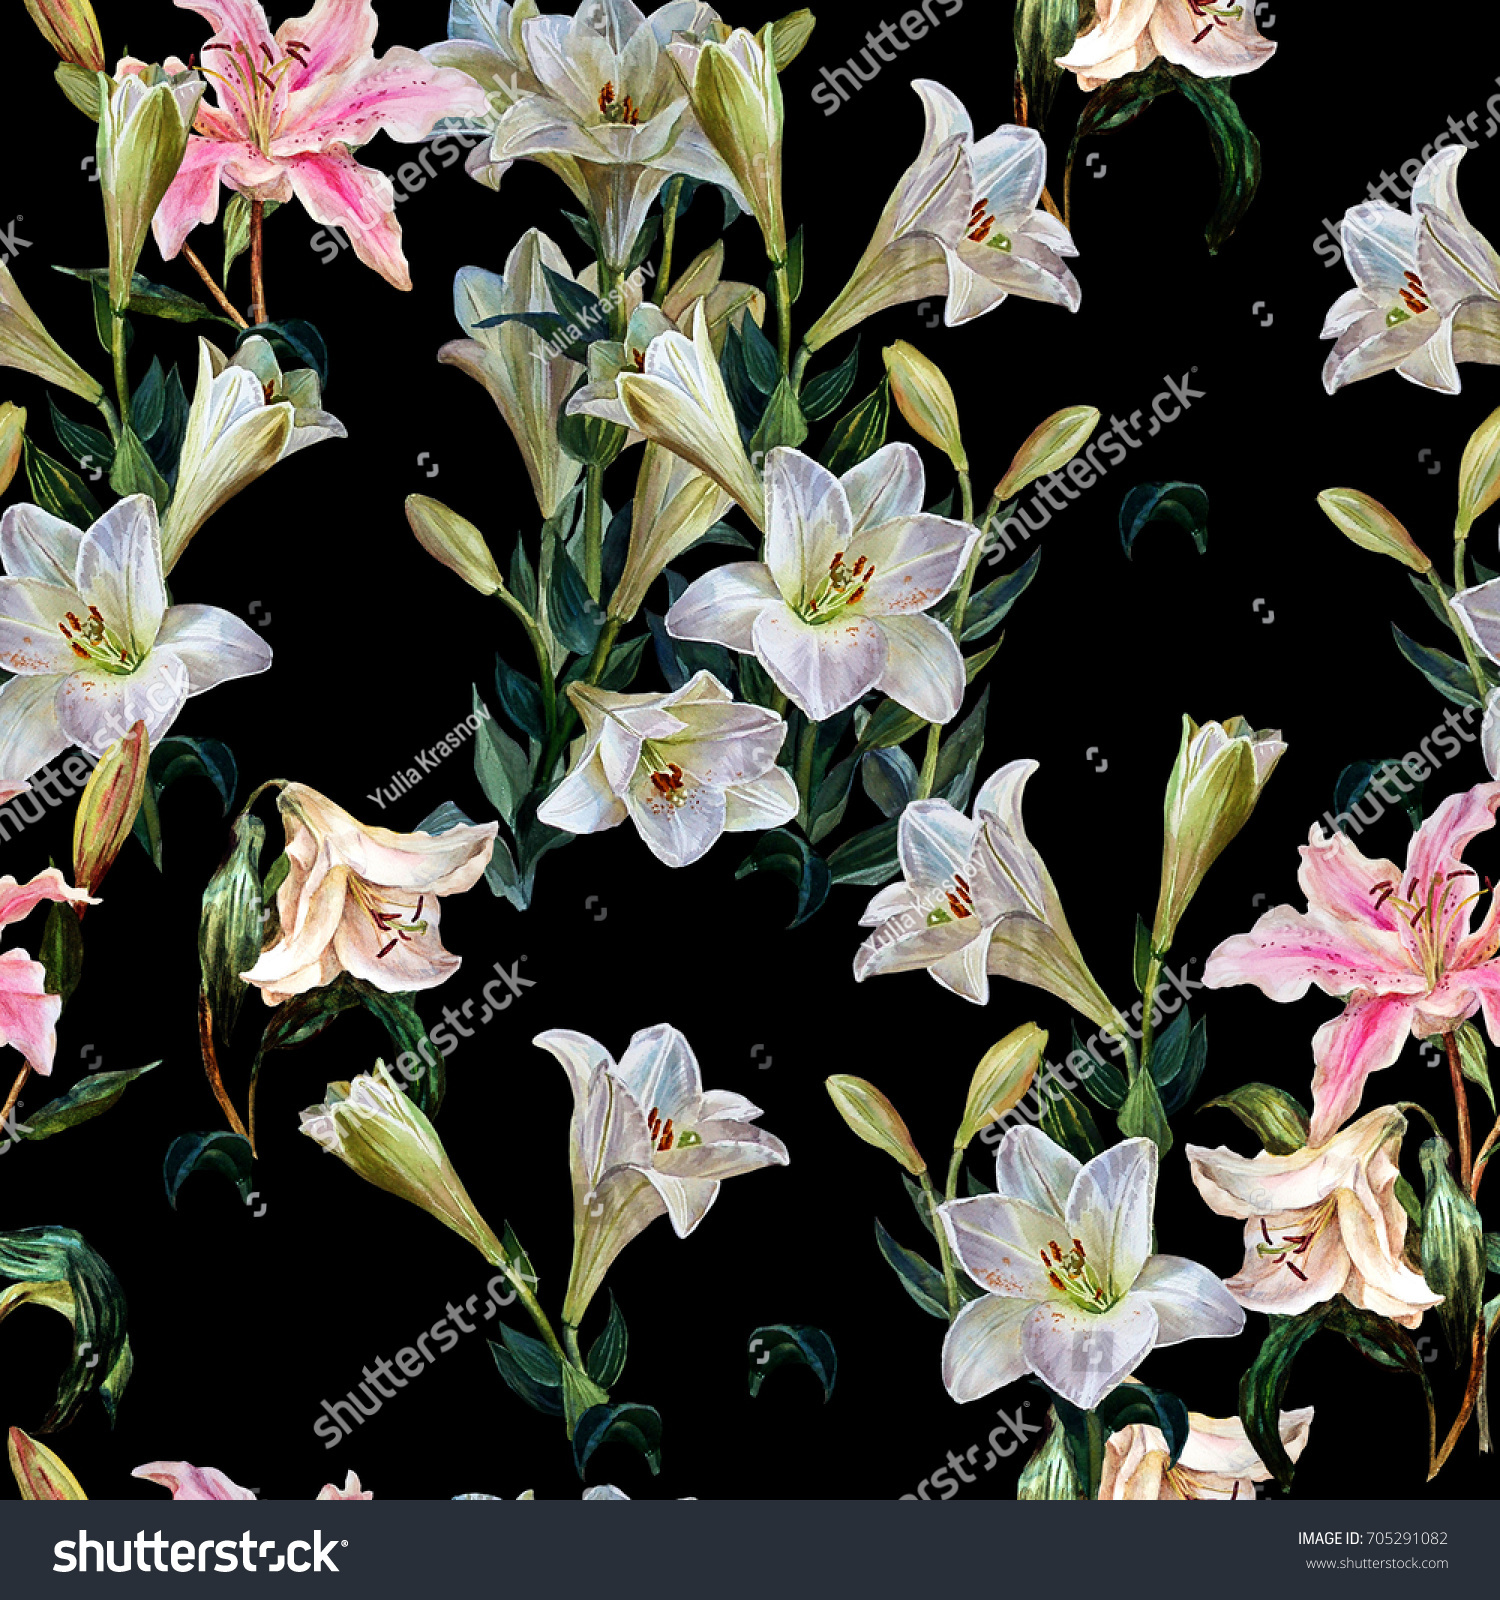 Floral l seamless pattern flowers royal lilies stock illustration floral l seamless pattern of royal lilies on a black backgroundtanical illustration izmirmasajfo